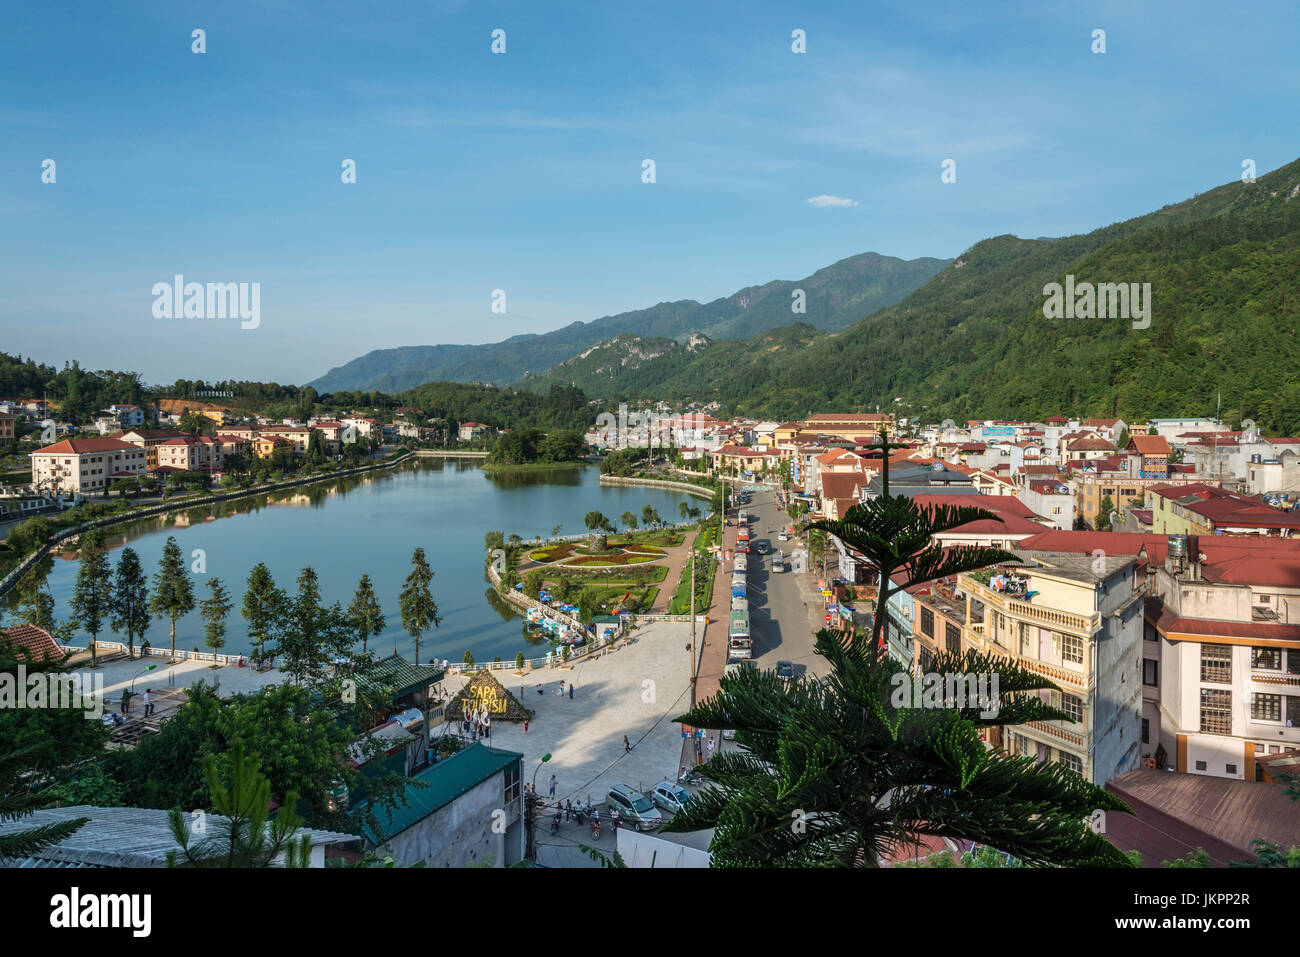 Scenic view of Sapa lake and town northern Vietnam - Stock Image